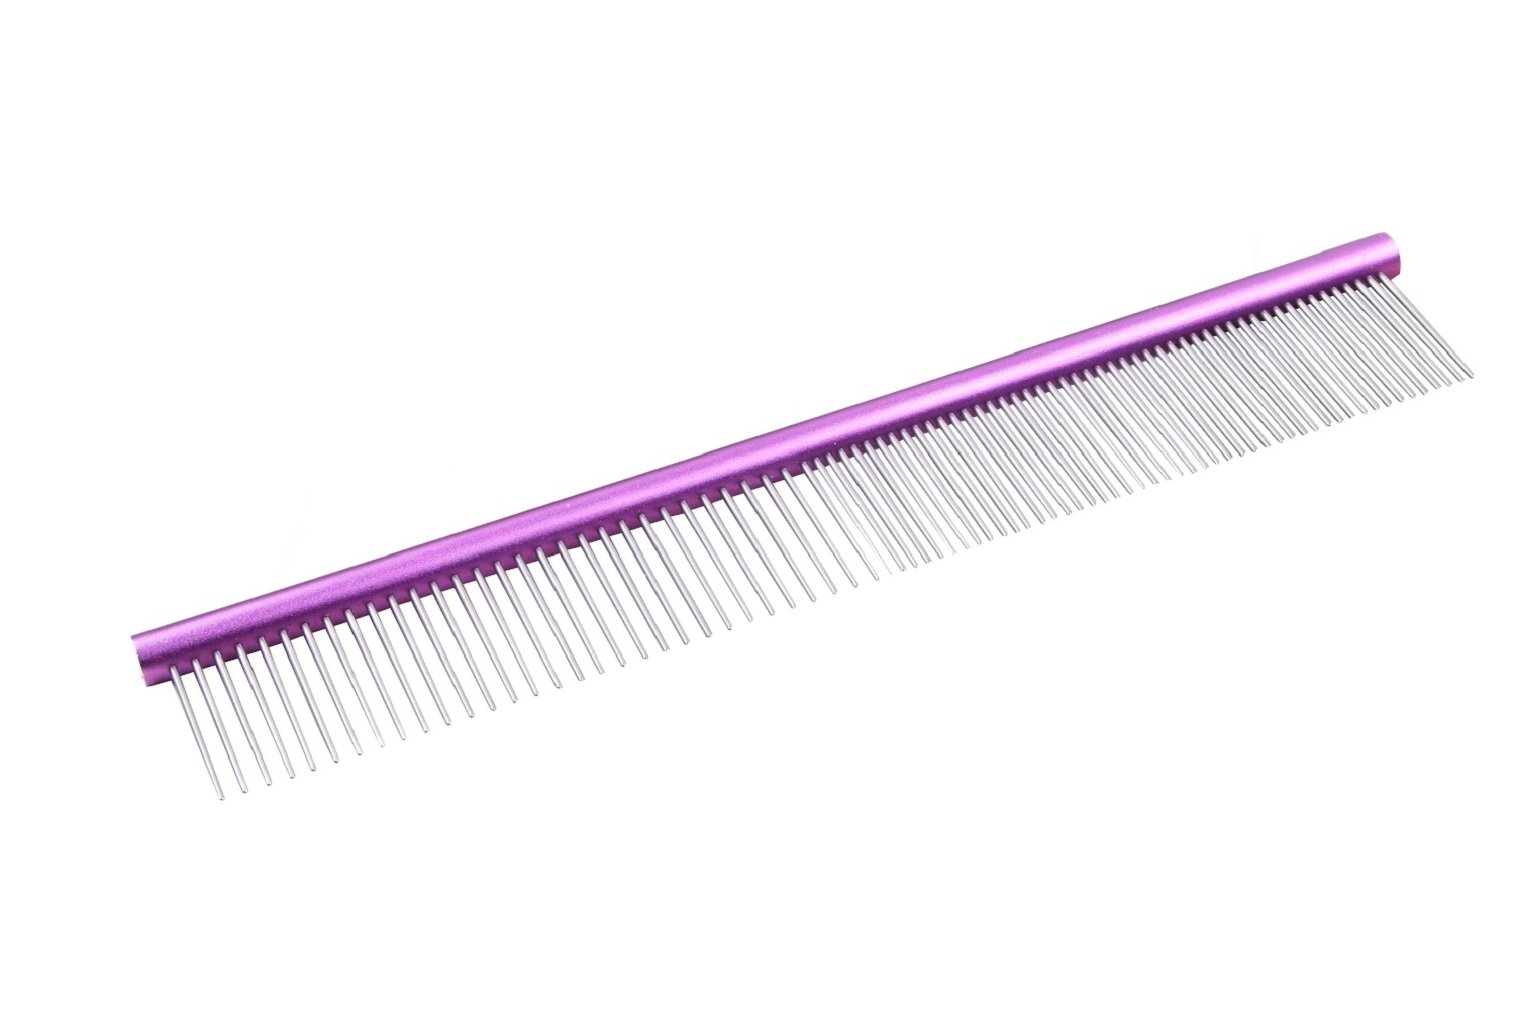 Extra Long Pet Combs,Cat Combs, Dog Grooming Combs, Stainless Steel Shedding Comb Brush Fine Coarse Pins Rounded Teeth Trimmer , Horse Grooming tools 9.8 Inch (Violet)